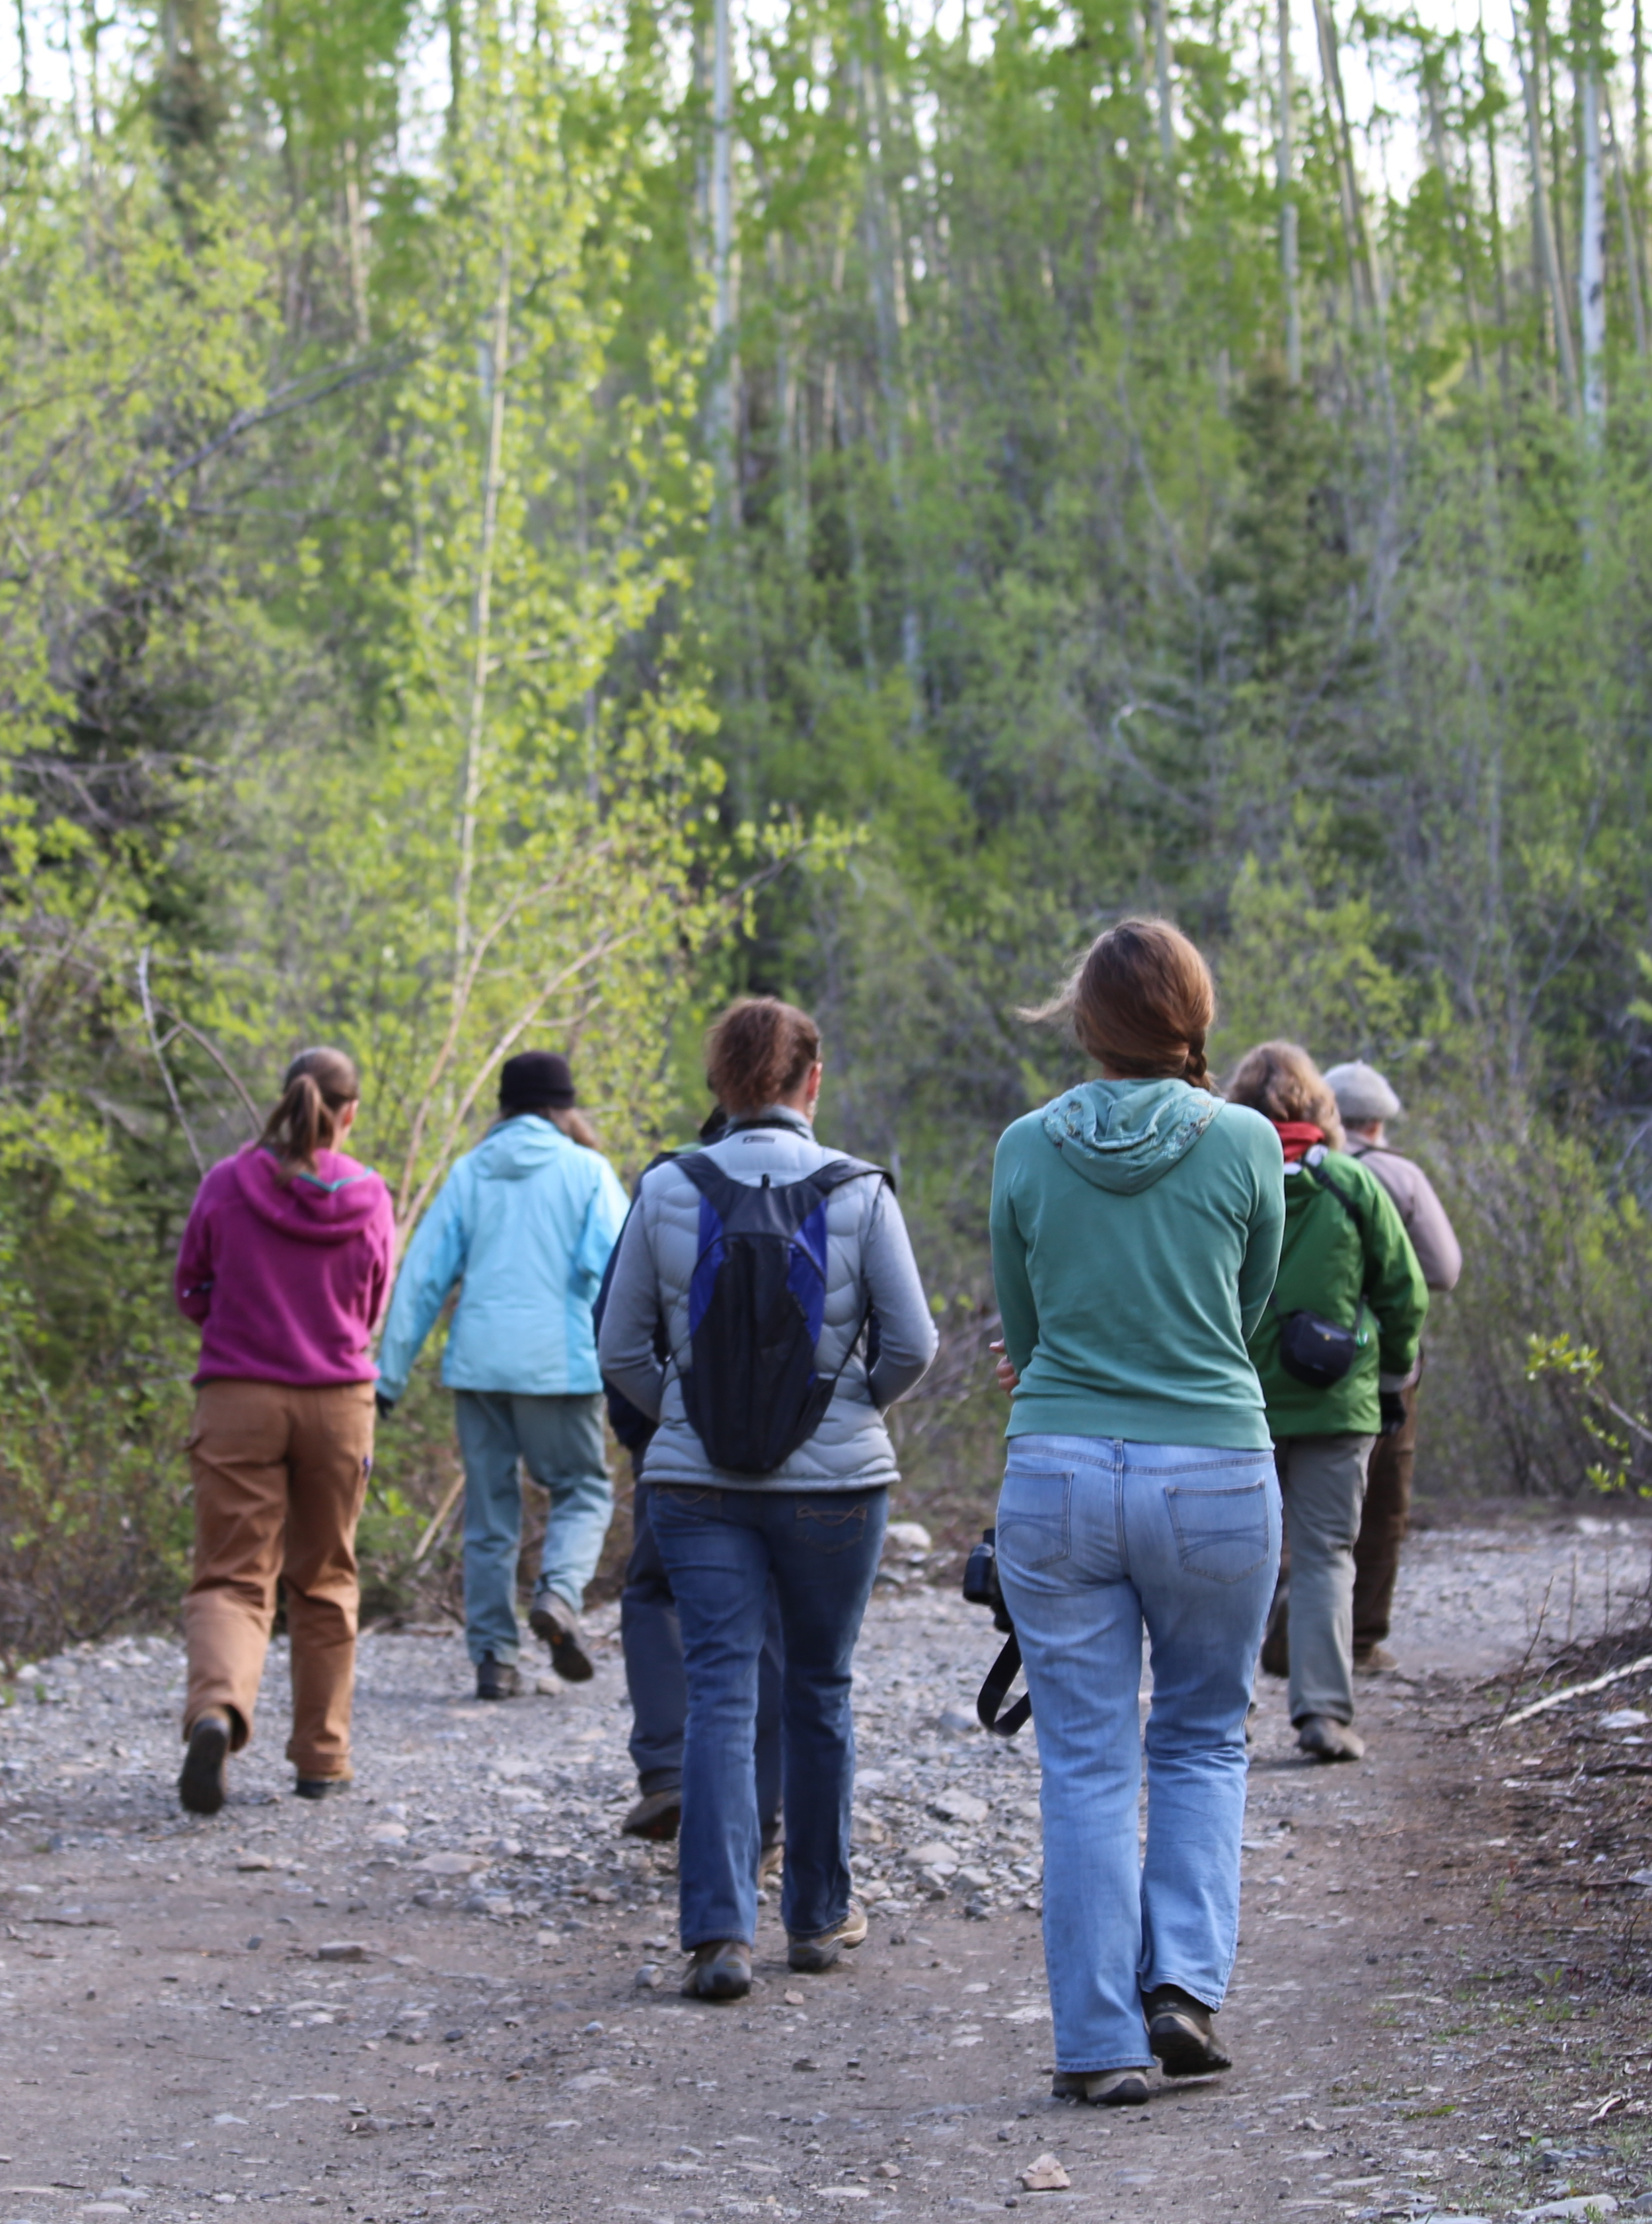 Birders headed down the trail. Photo by Leanne Phelps.